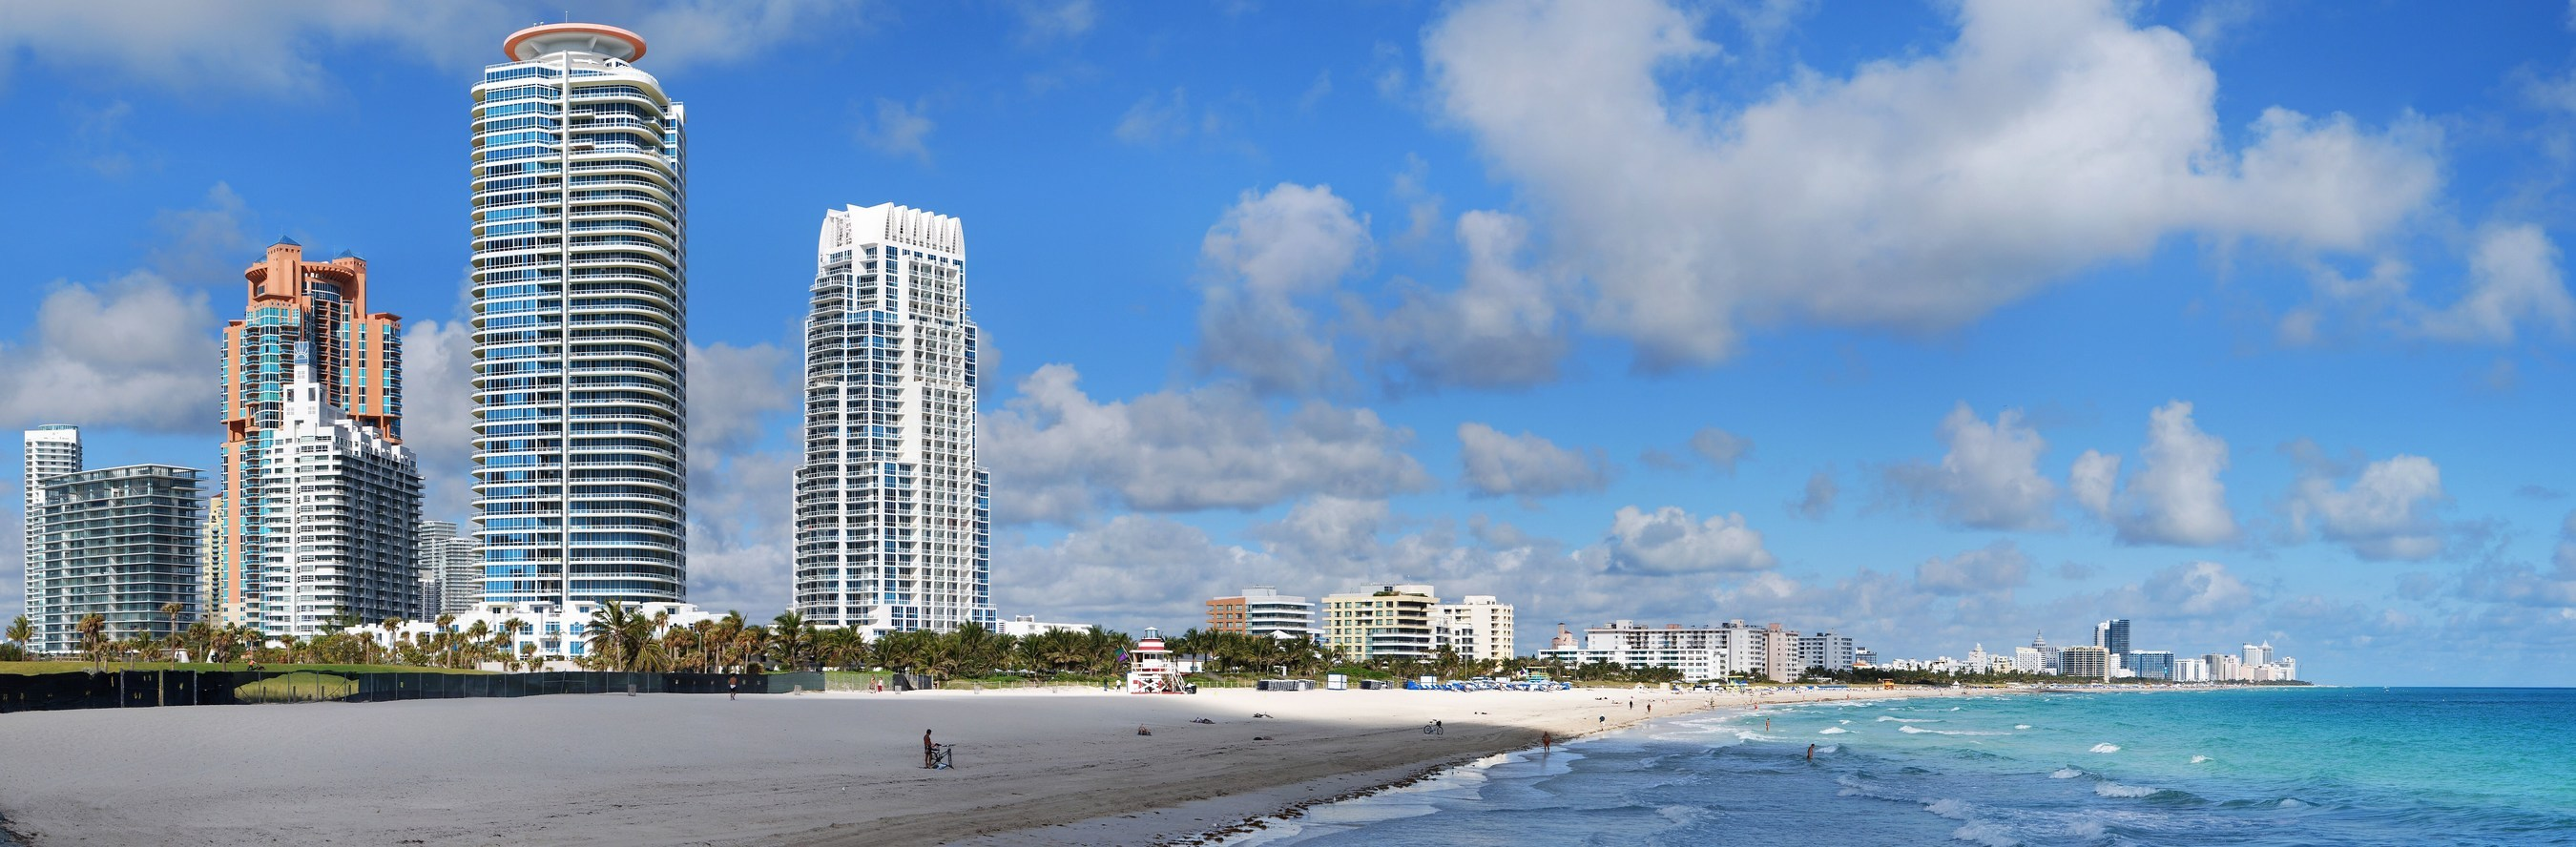 Miami Beach is a Choice Destination for Voluntourism Opportunities in the New Year, Giving Travelers the Chance to Make a Difference